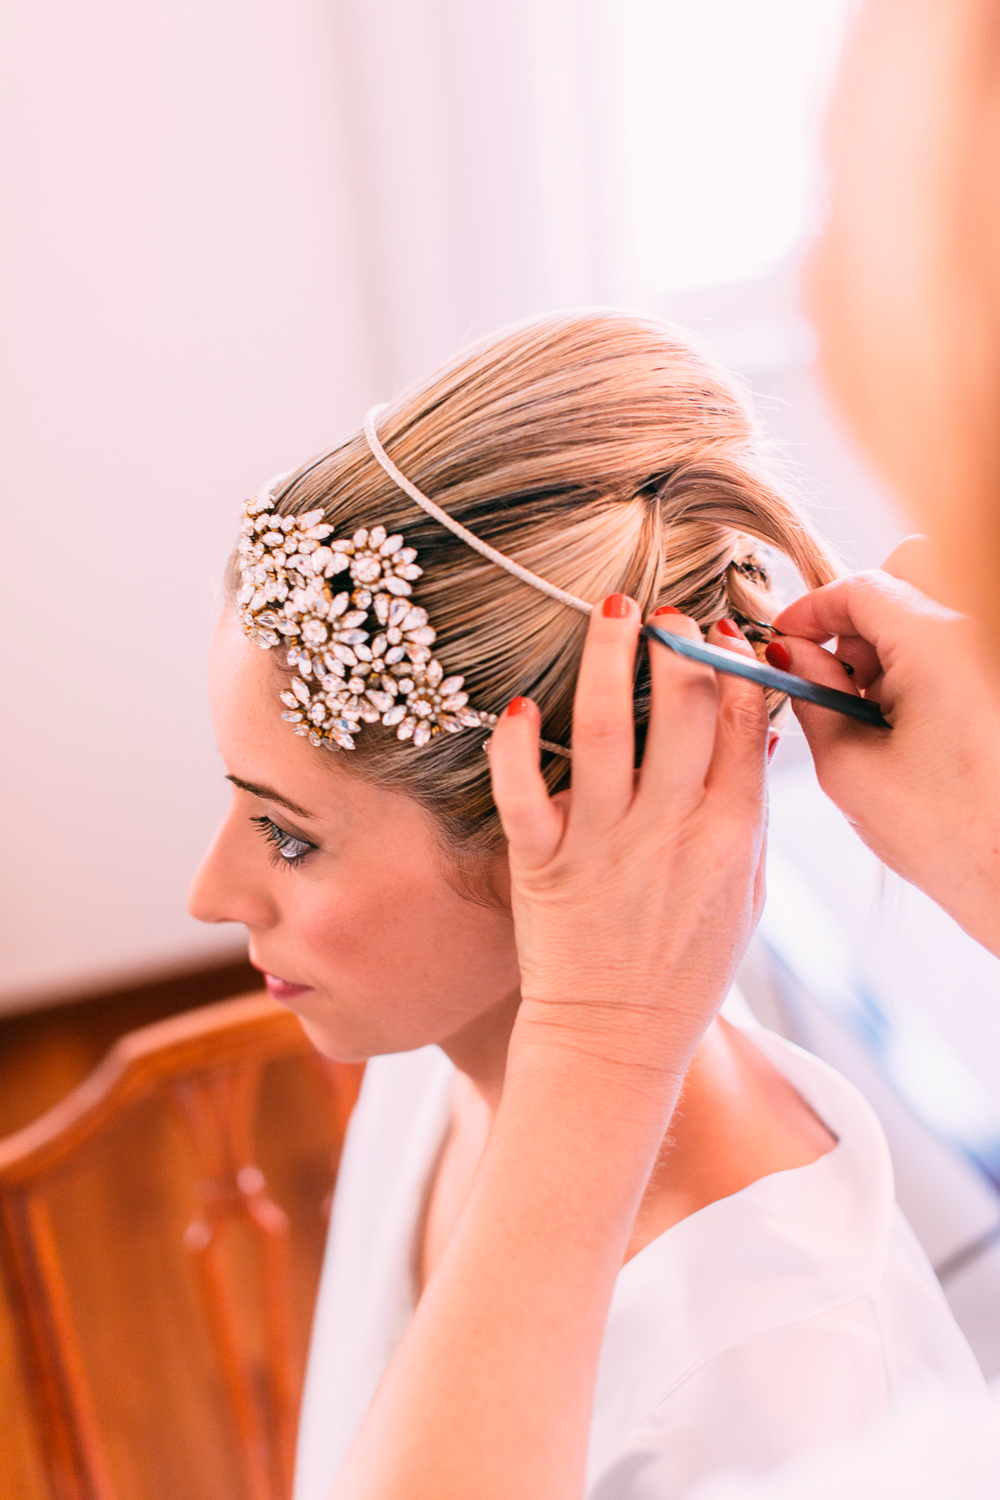 027-bride getting ready.jpg